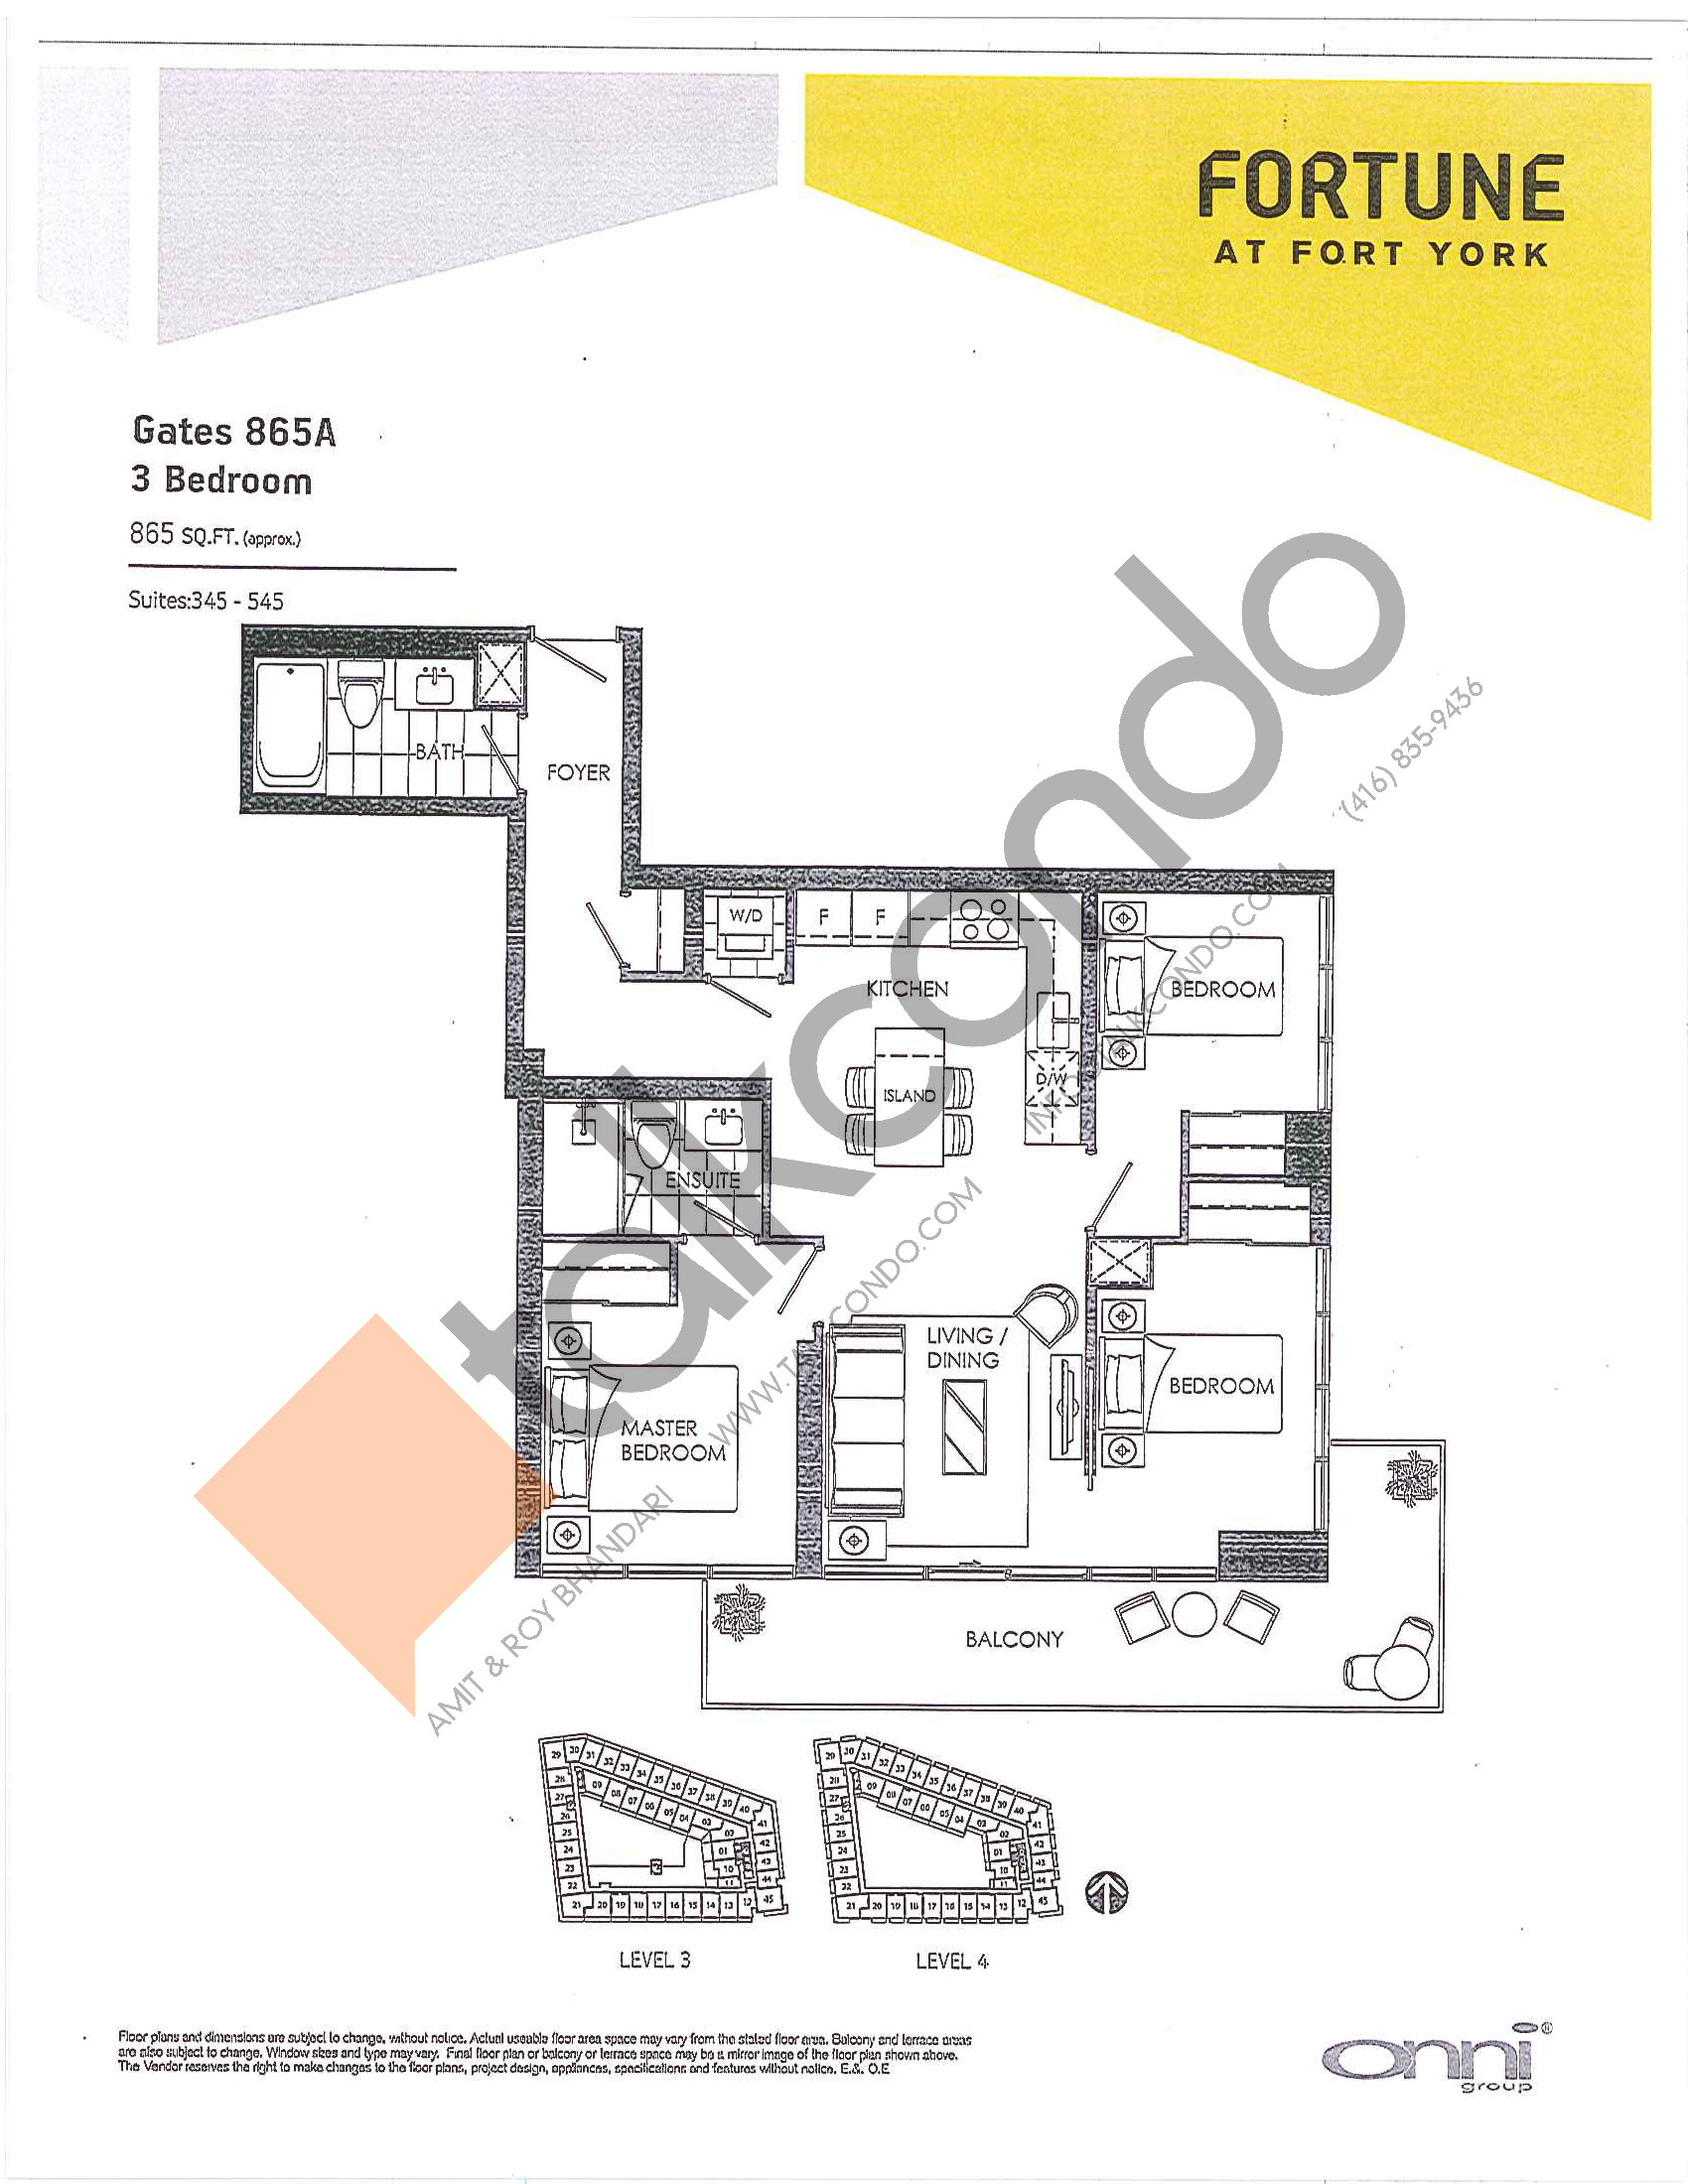 Gates 865A Floor Plan at Fortune at Fort York - 865 sq.ft